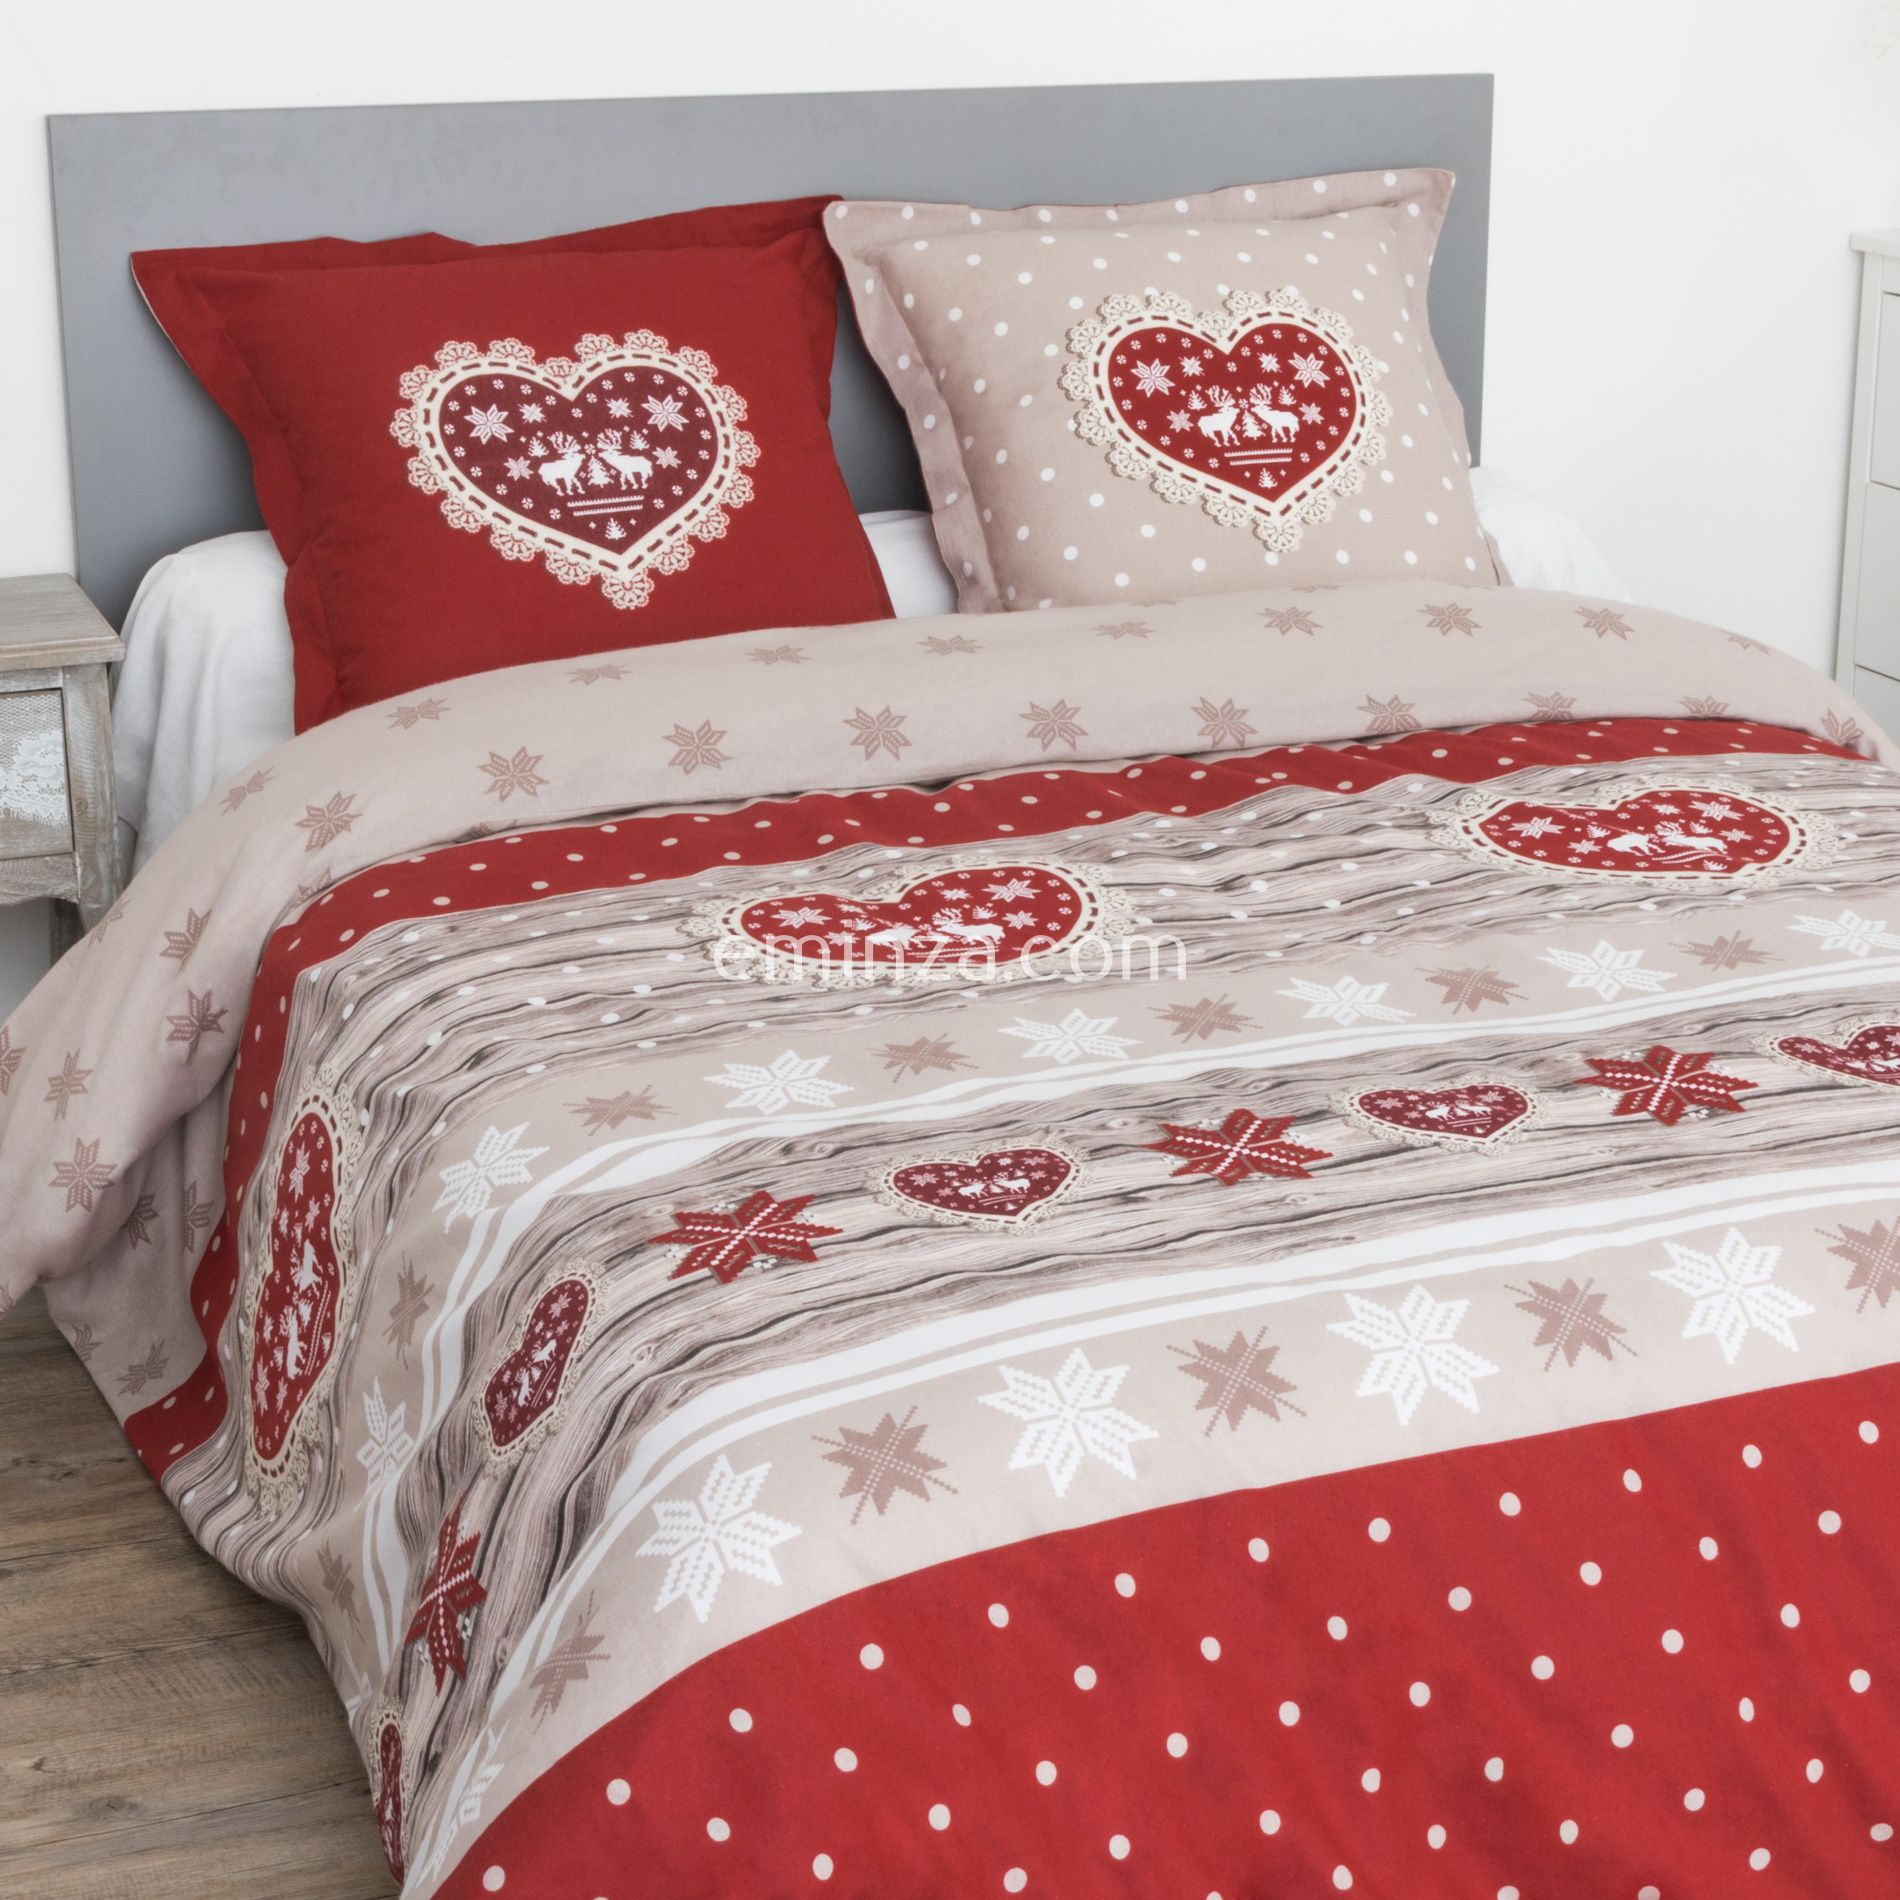 housse de couette et deux taies flanelle de coton 260 cm coeur rouge housse de couette eminza. Black Bedroom Furniture Sets. Home Design Ideas